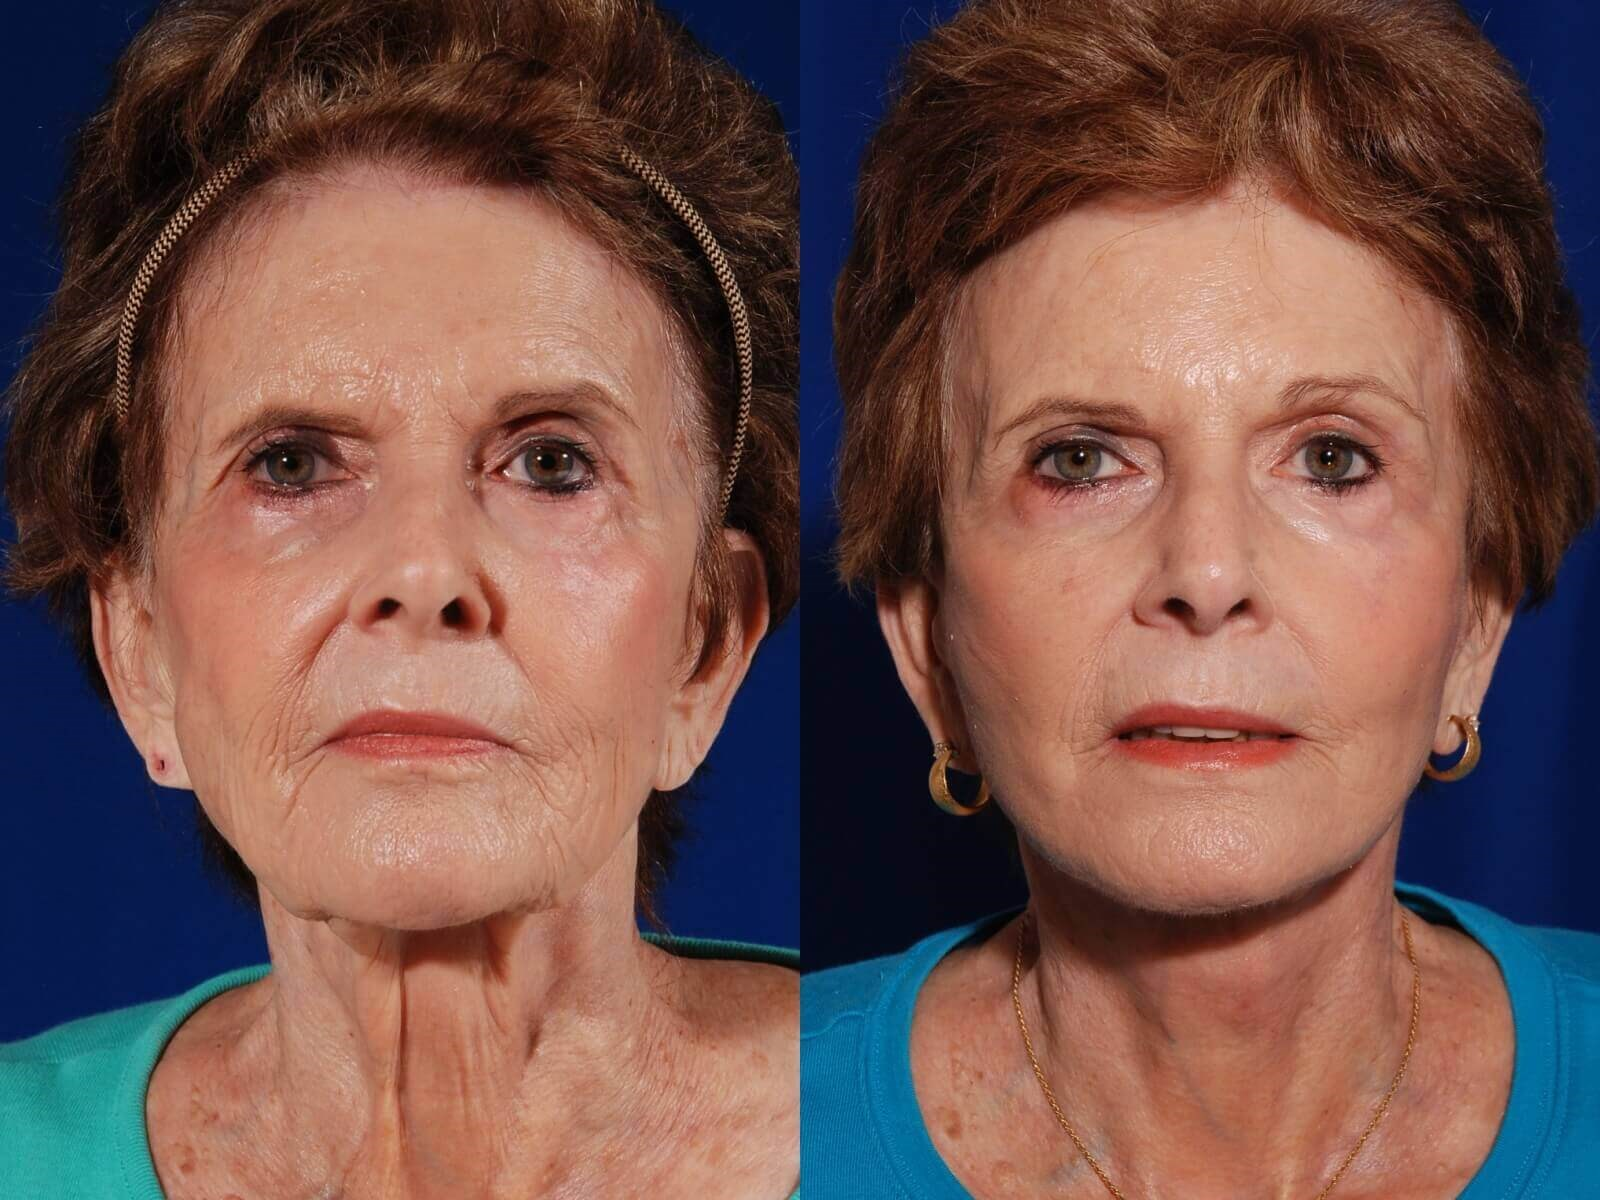 Facelift,BrowLift,Fat to Face Before/After Facelift